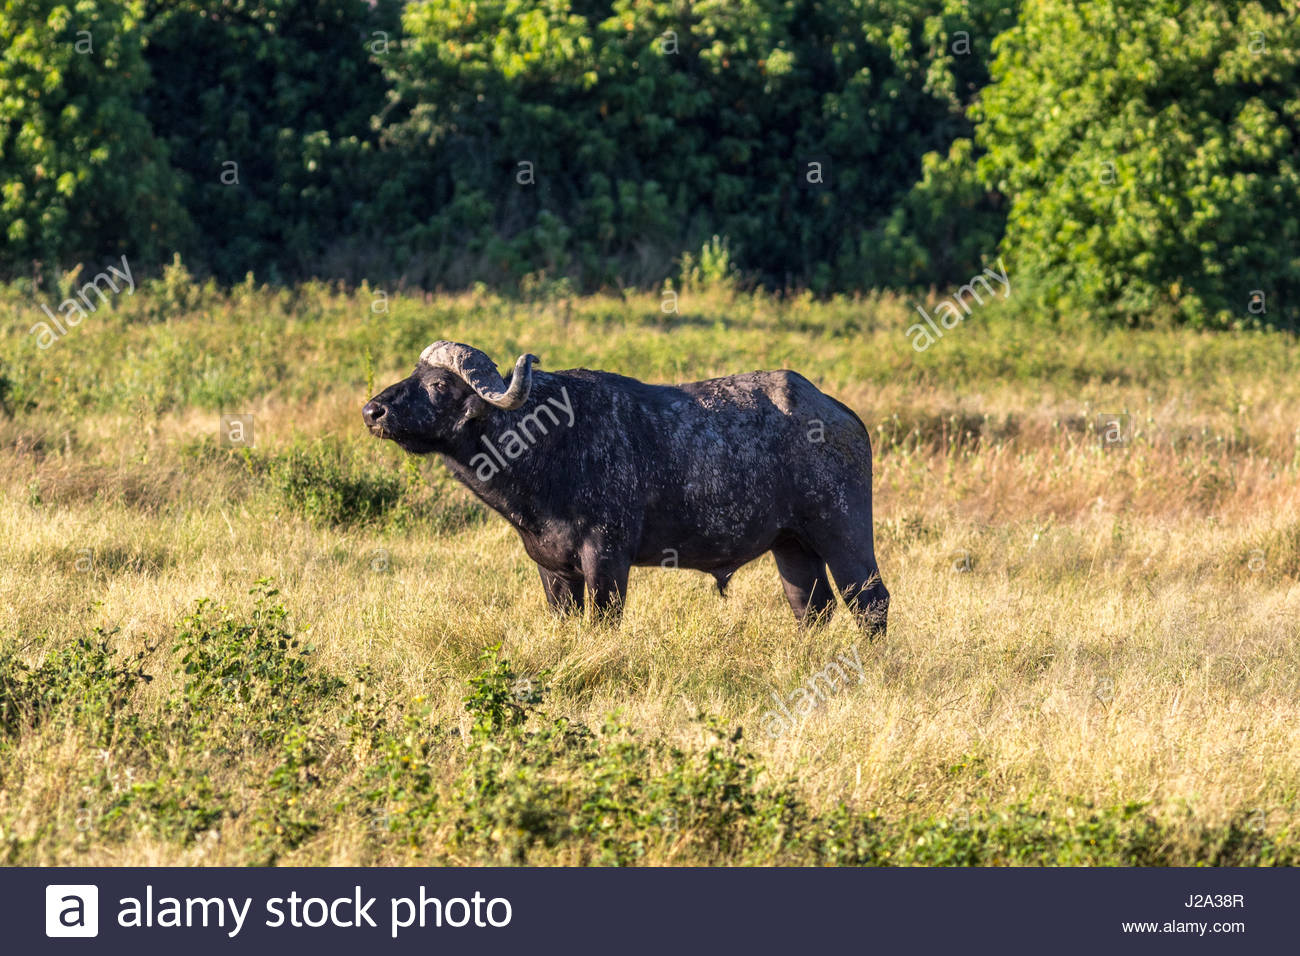 A male Buffalo standing sideways to the camera in a typical pose. - Stock Image